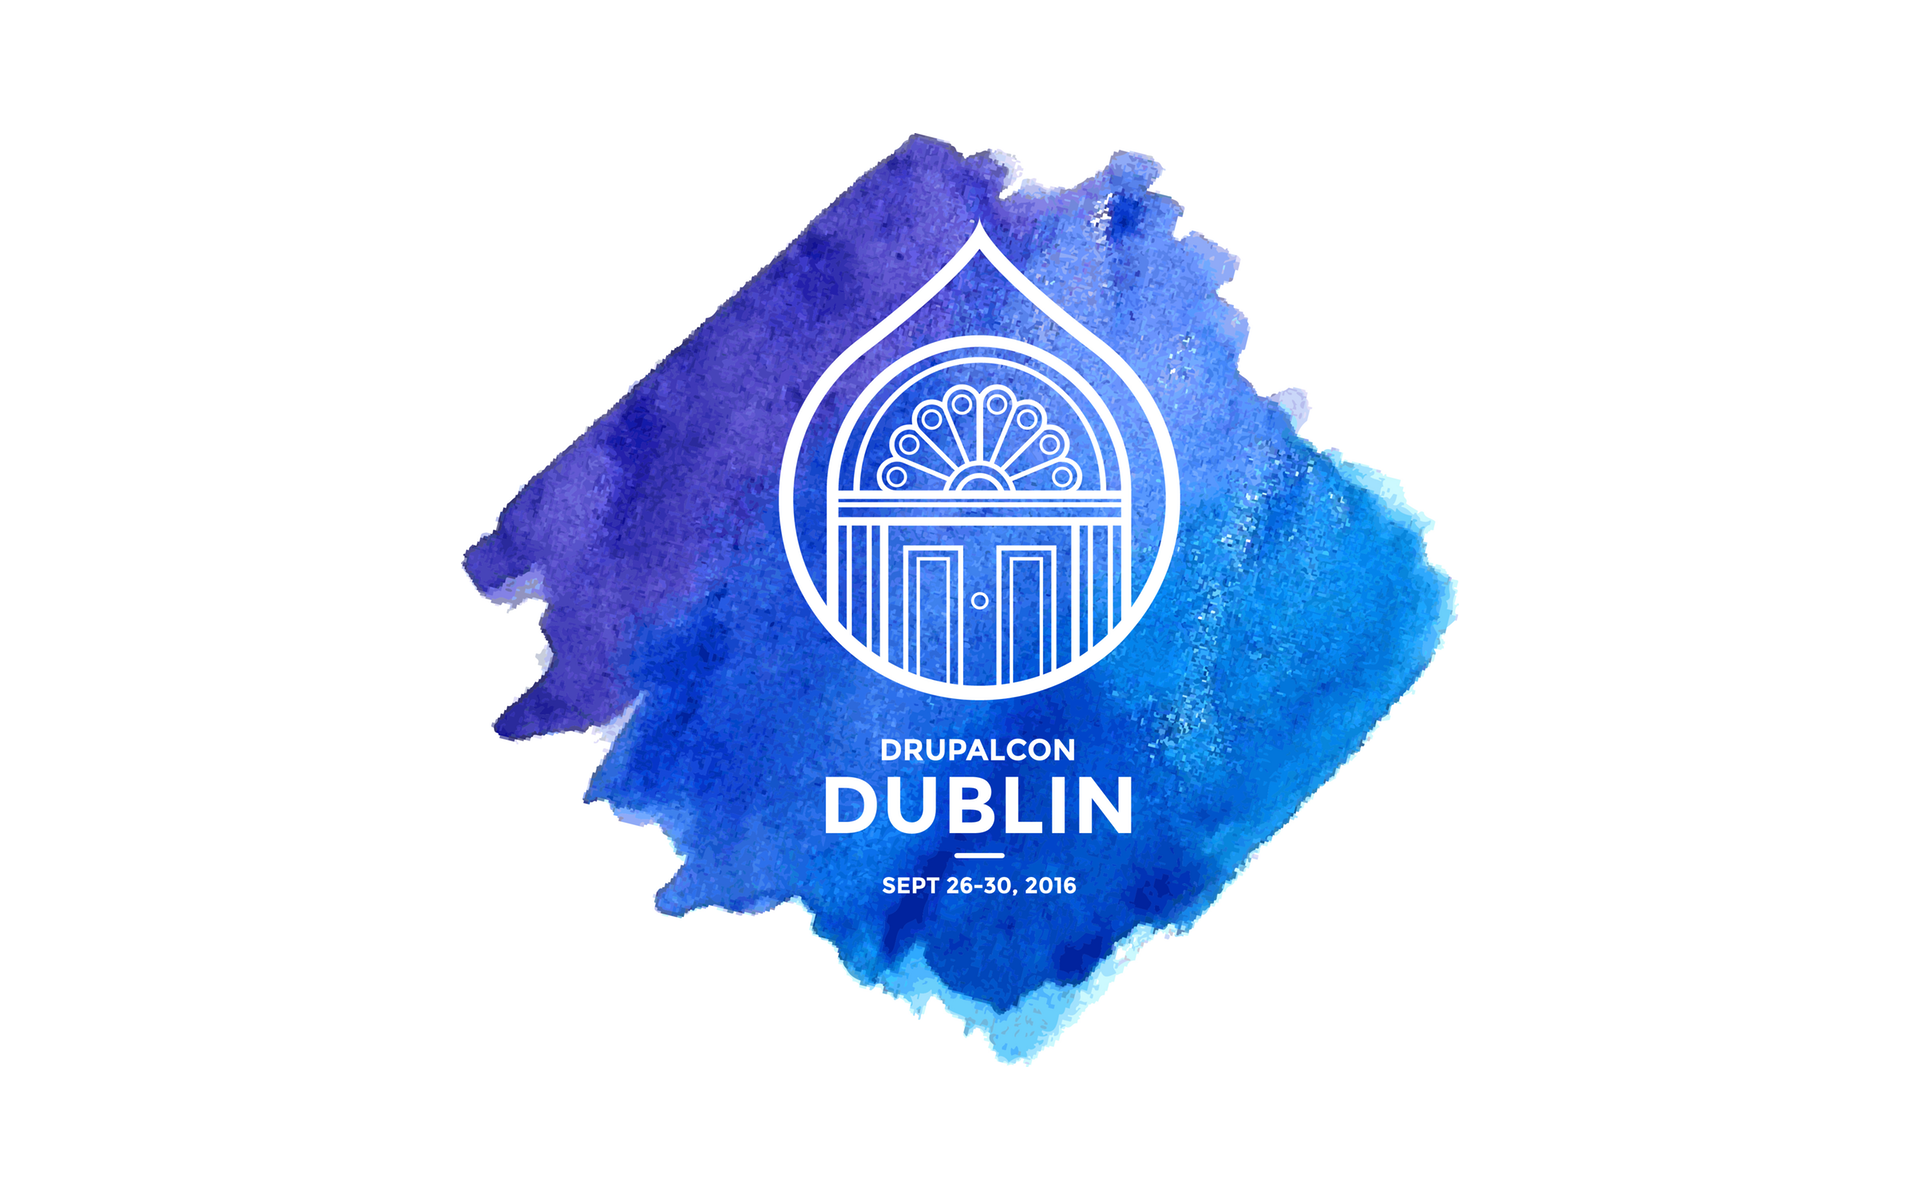 DrupalCon Dublin watercolor logo